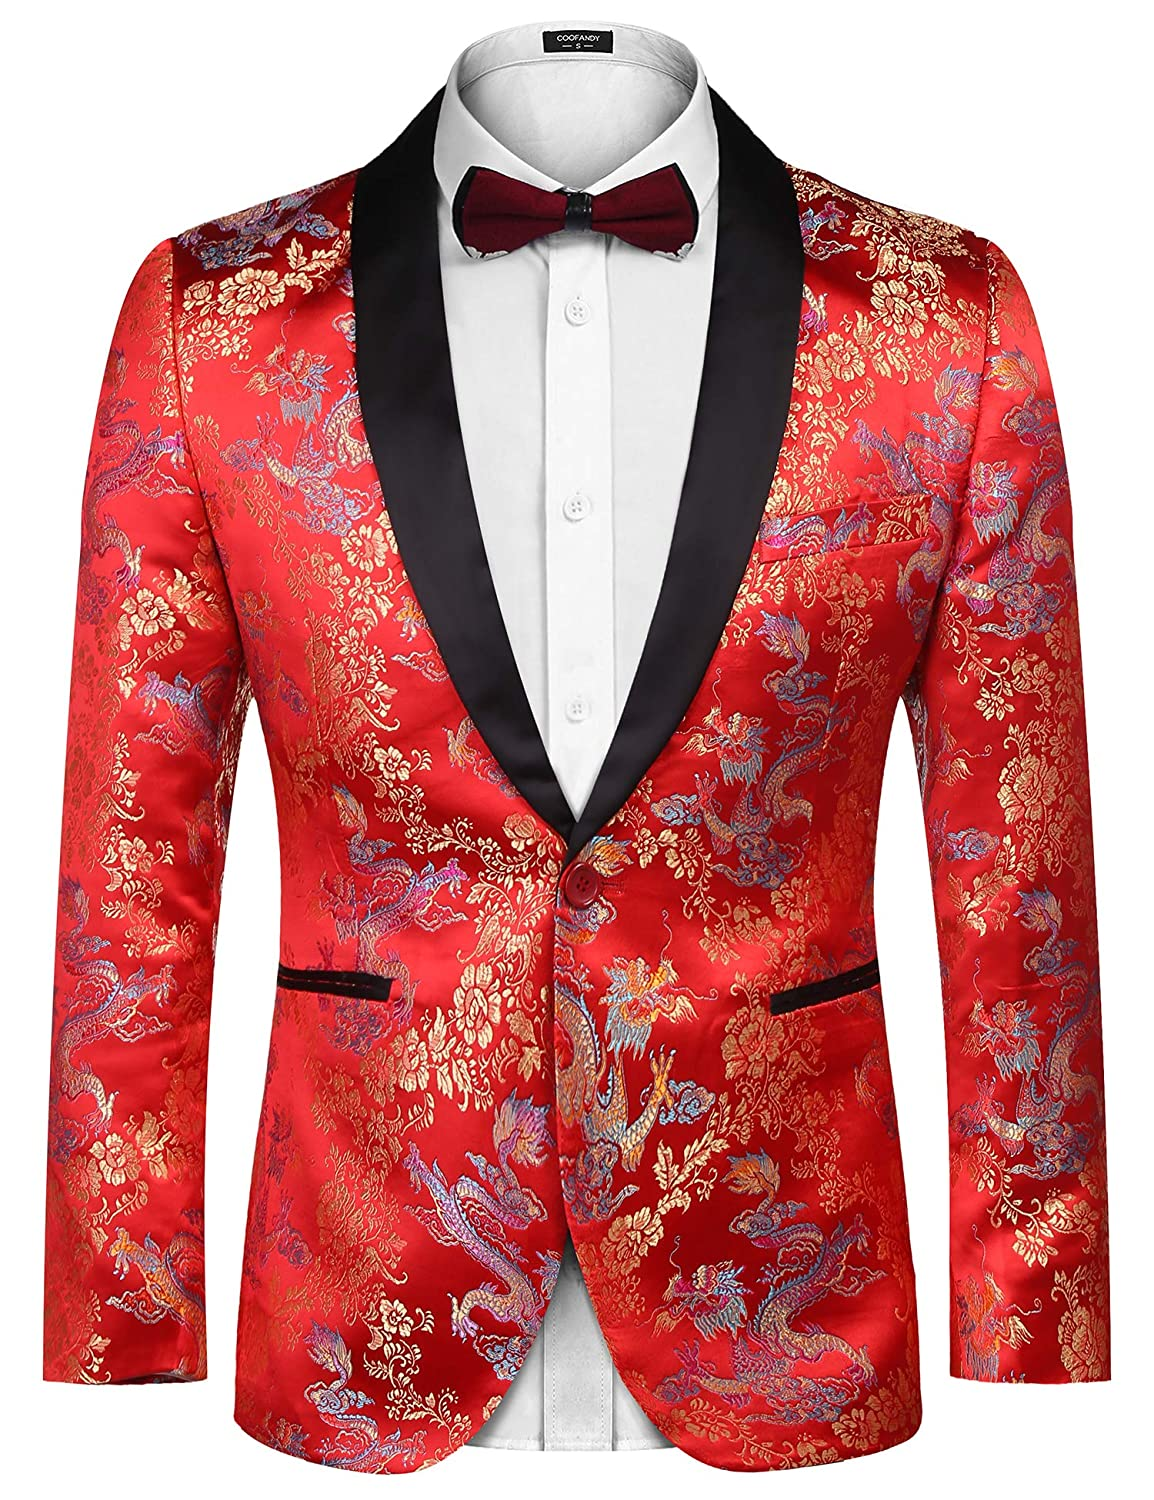 Coofandy Mens Floral Dress Suit Embroidered Wedding Blazer Dinner Tuxedo Jacket for Christmas New Years Party